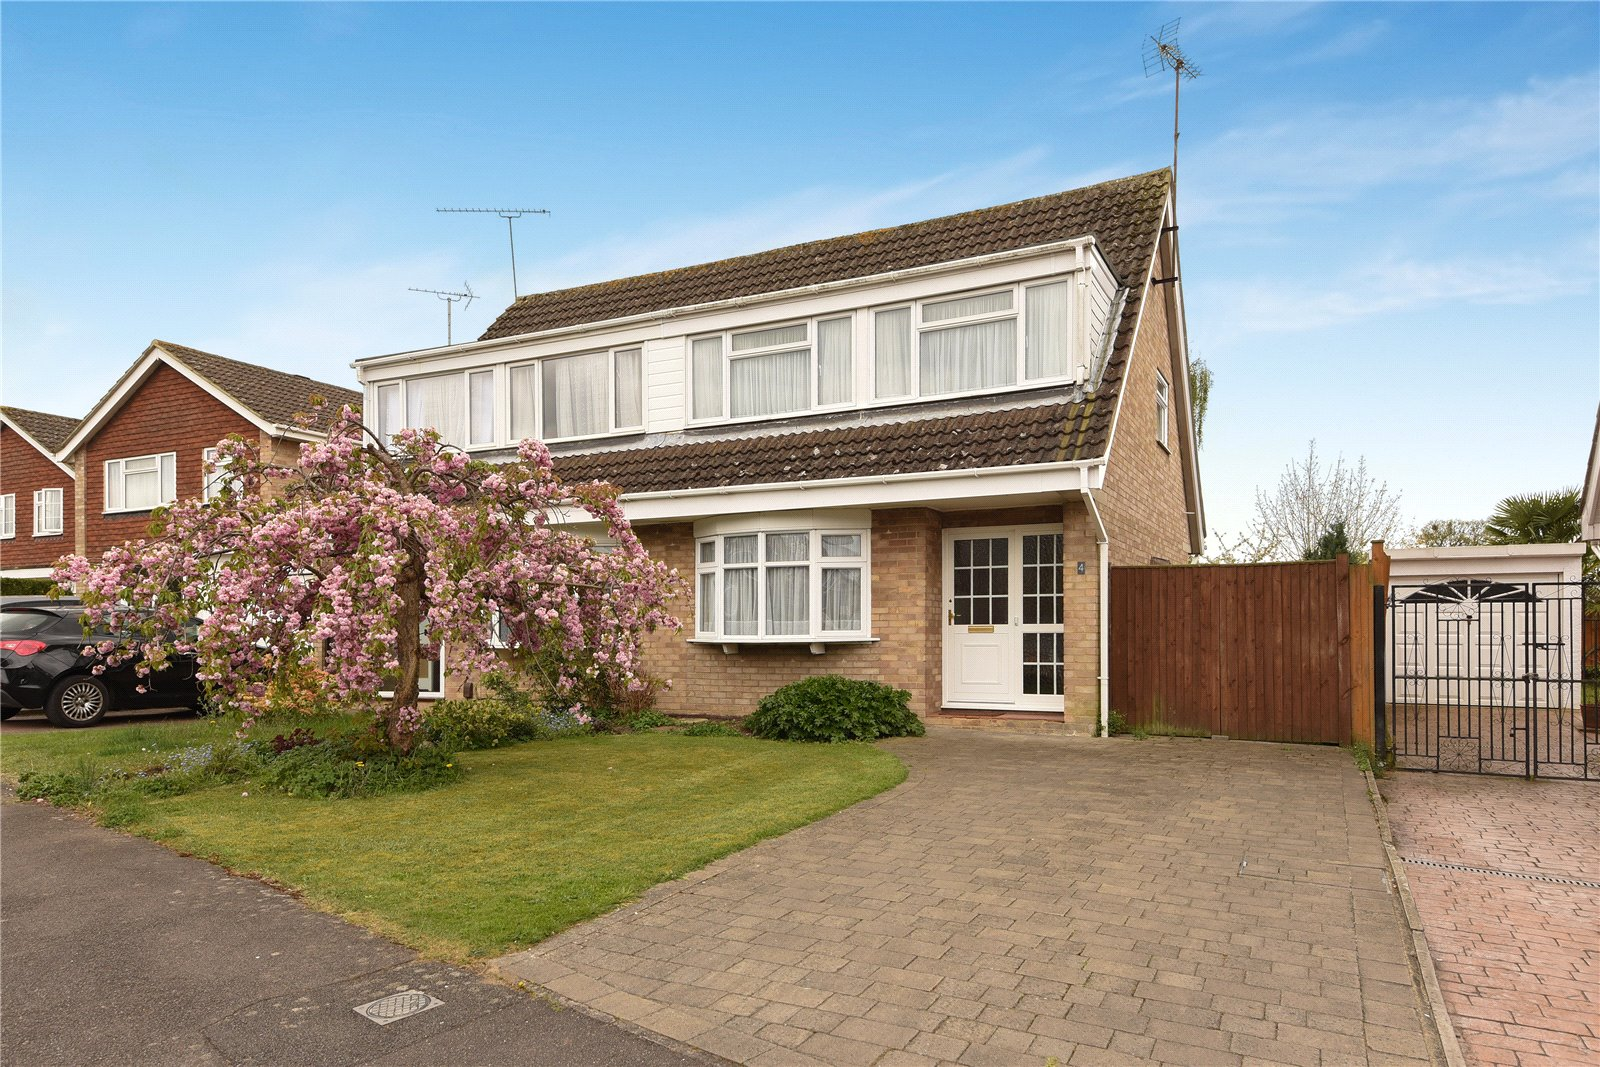 3 Bedrooms House for sale in Launcestone Close, Earley, Reading, Berkshire, RG6